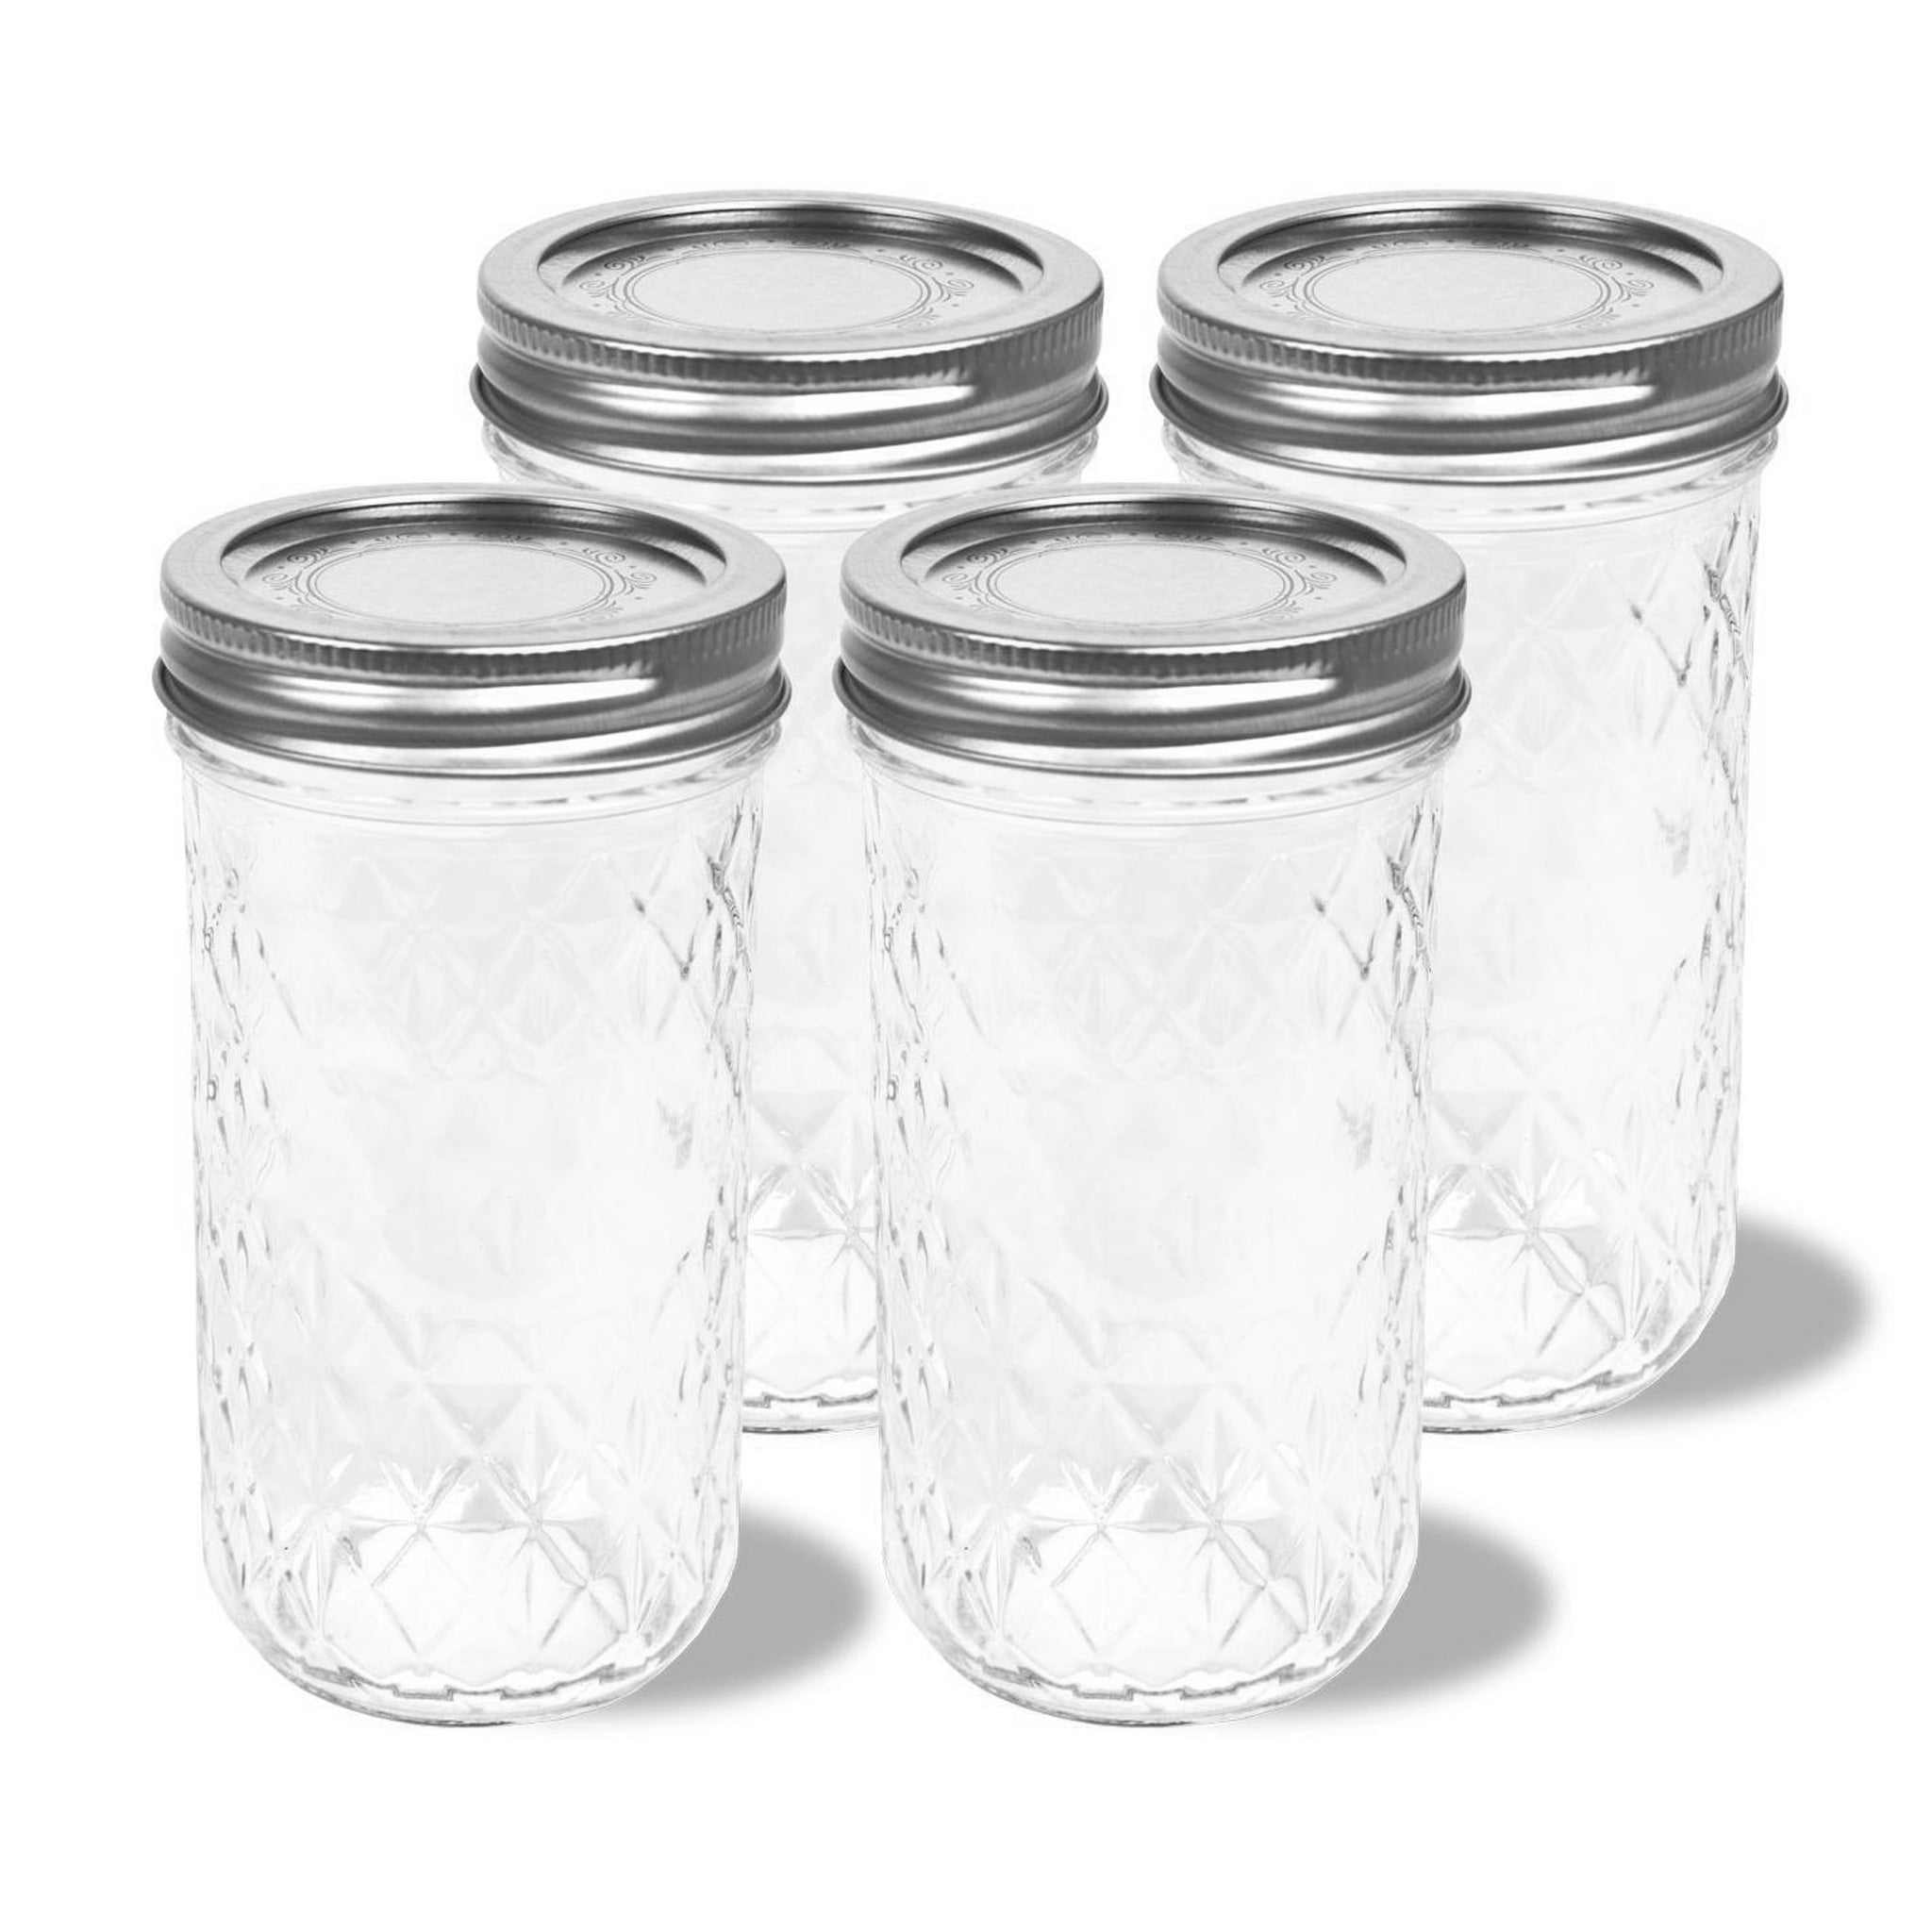 4-Pack Mason Jars (12 oz each) for the Personal Blender®. Blend up delicious smoothies, herbs, coffee beans, baby food and more. Store your recipes in these convenient and easy-to-use jars.